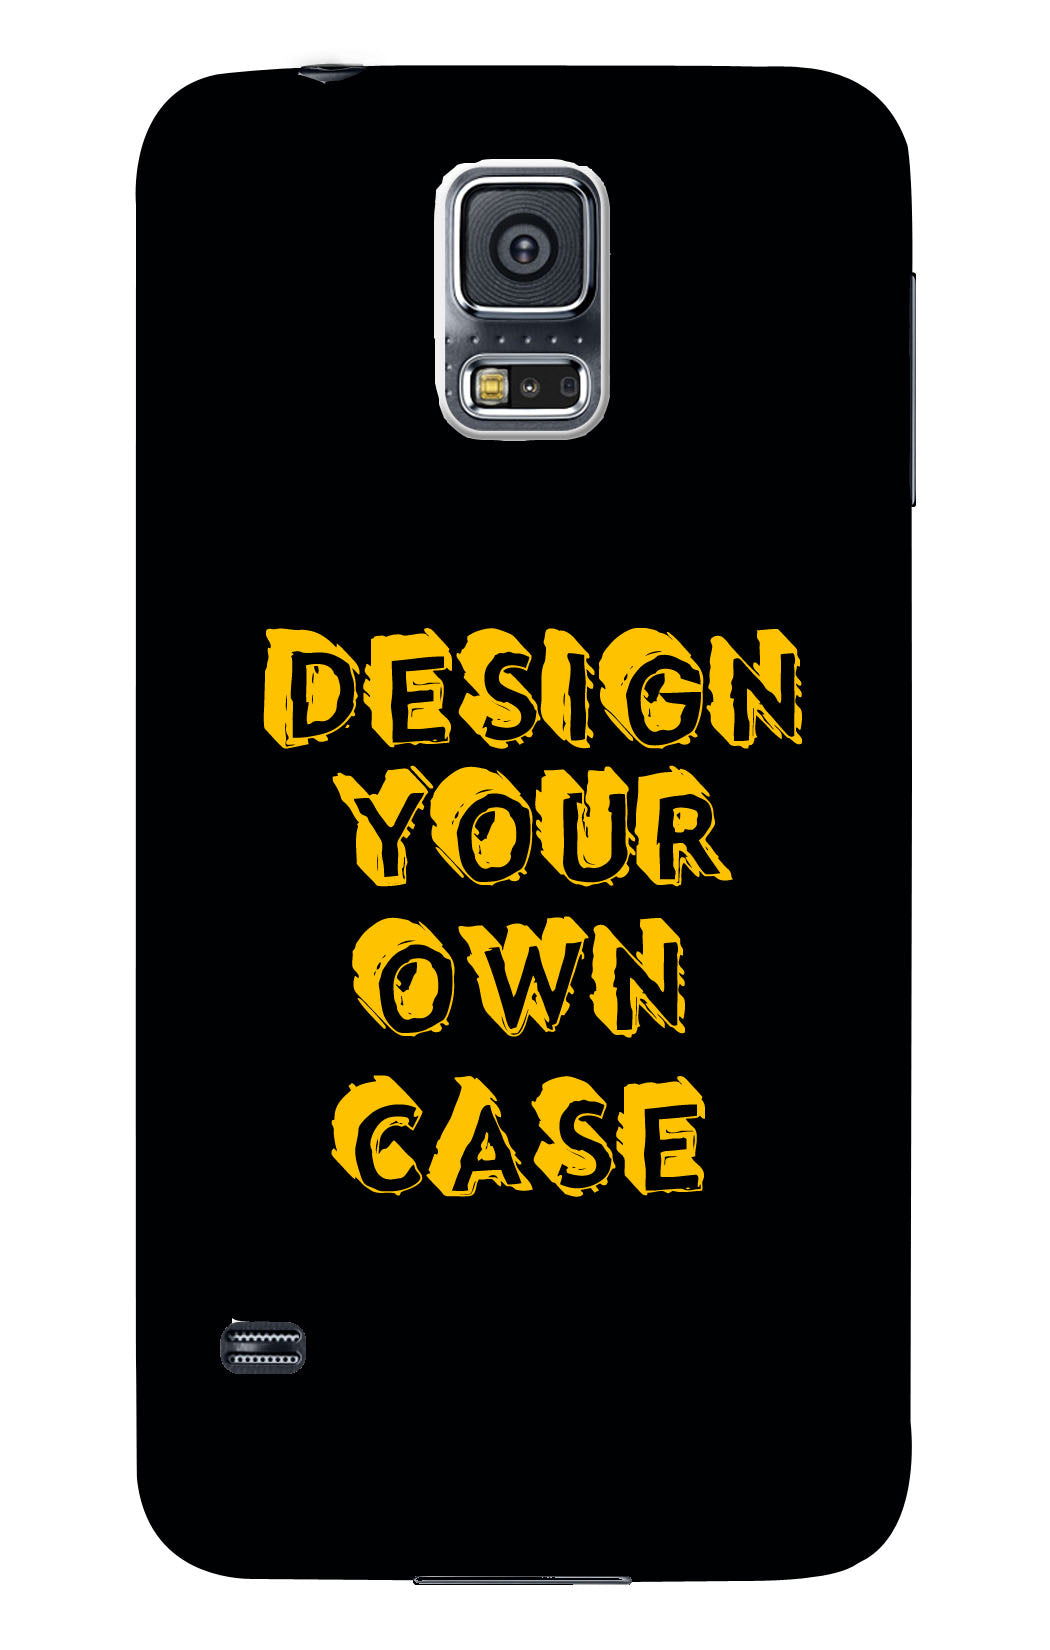 Design Your Own Case for Samsung Galaxy S5